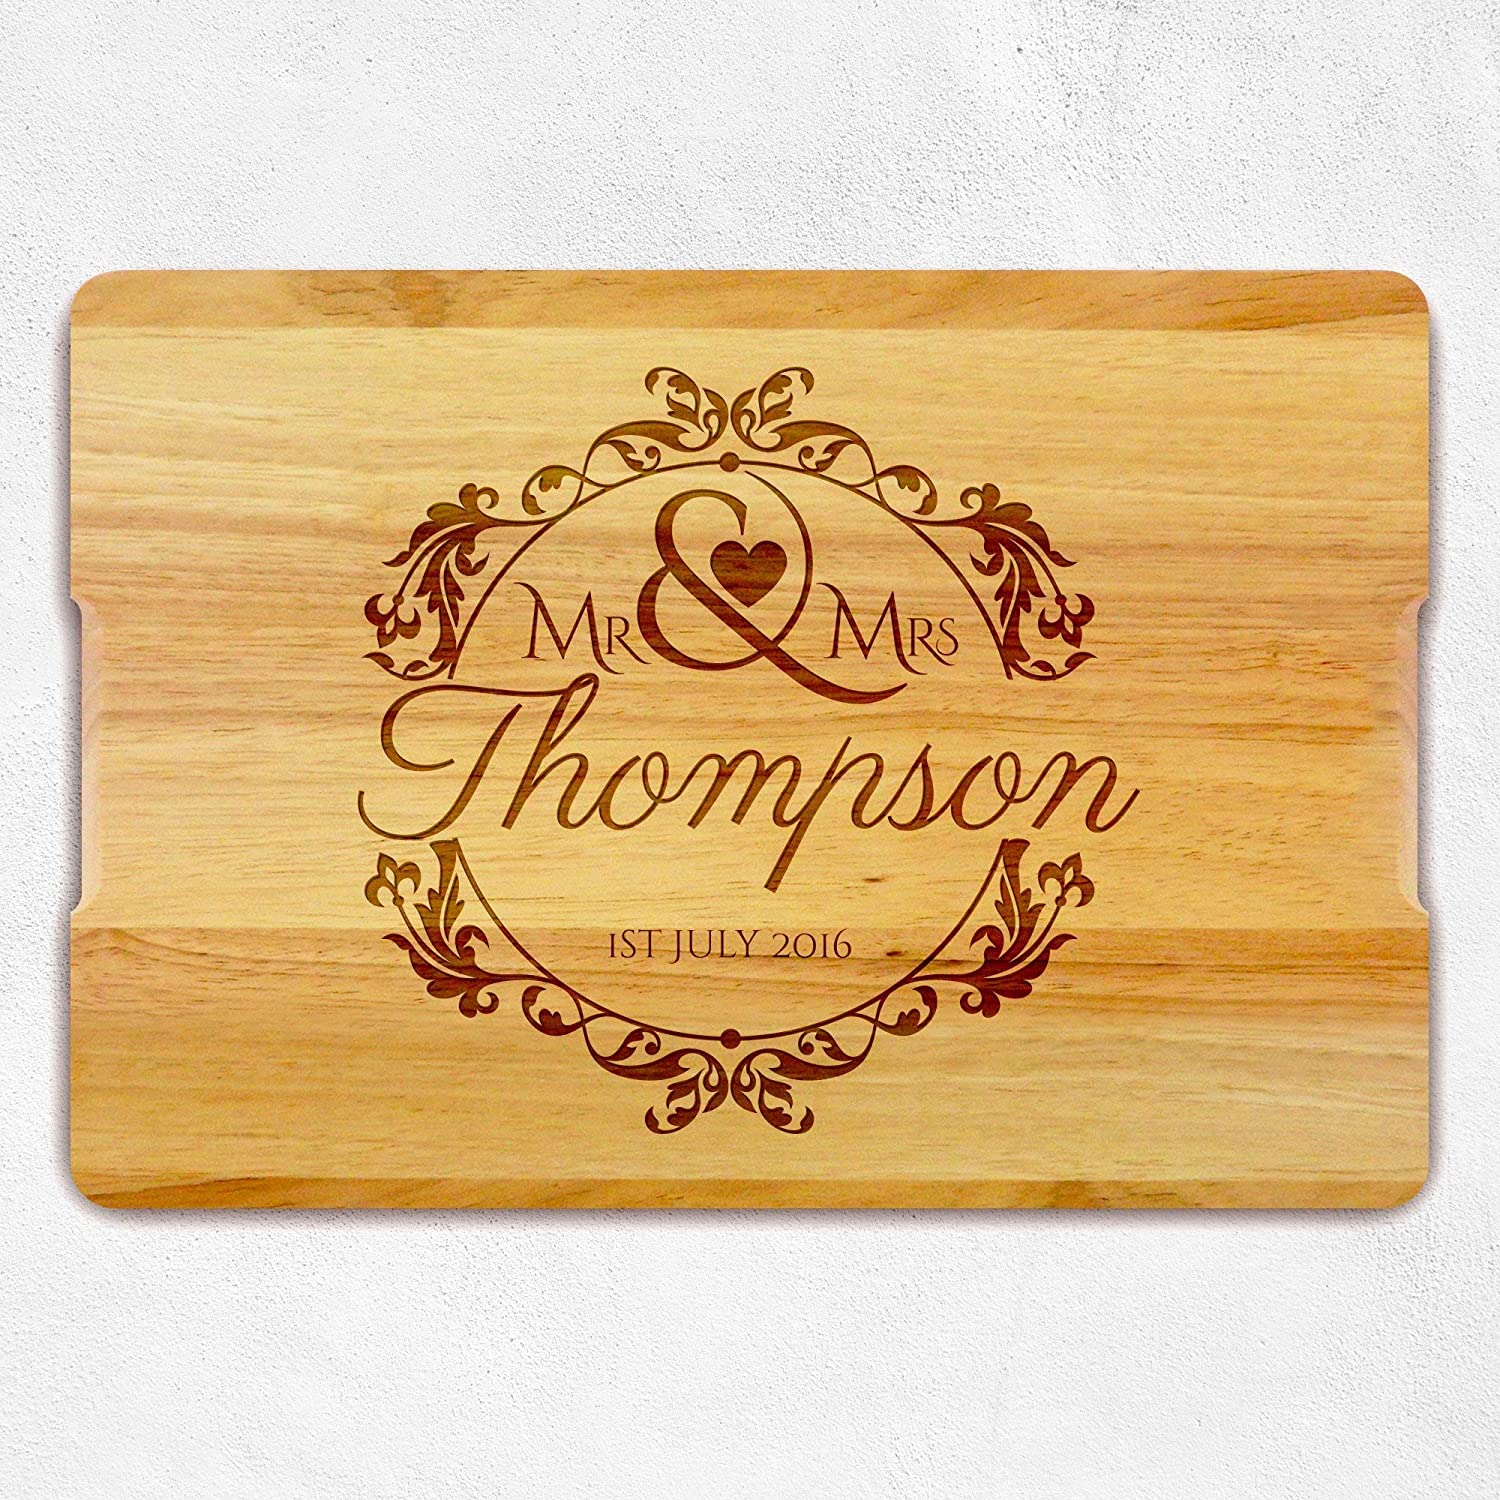 Personalized Cutting Board, Christmas Gift, Housewarming Gift, Wedding Gift, Gift for Couple, New House Gift, Wooden Cutting Board, Chopping Board